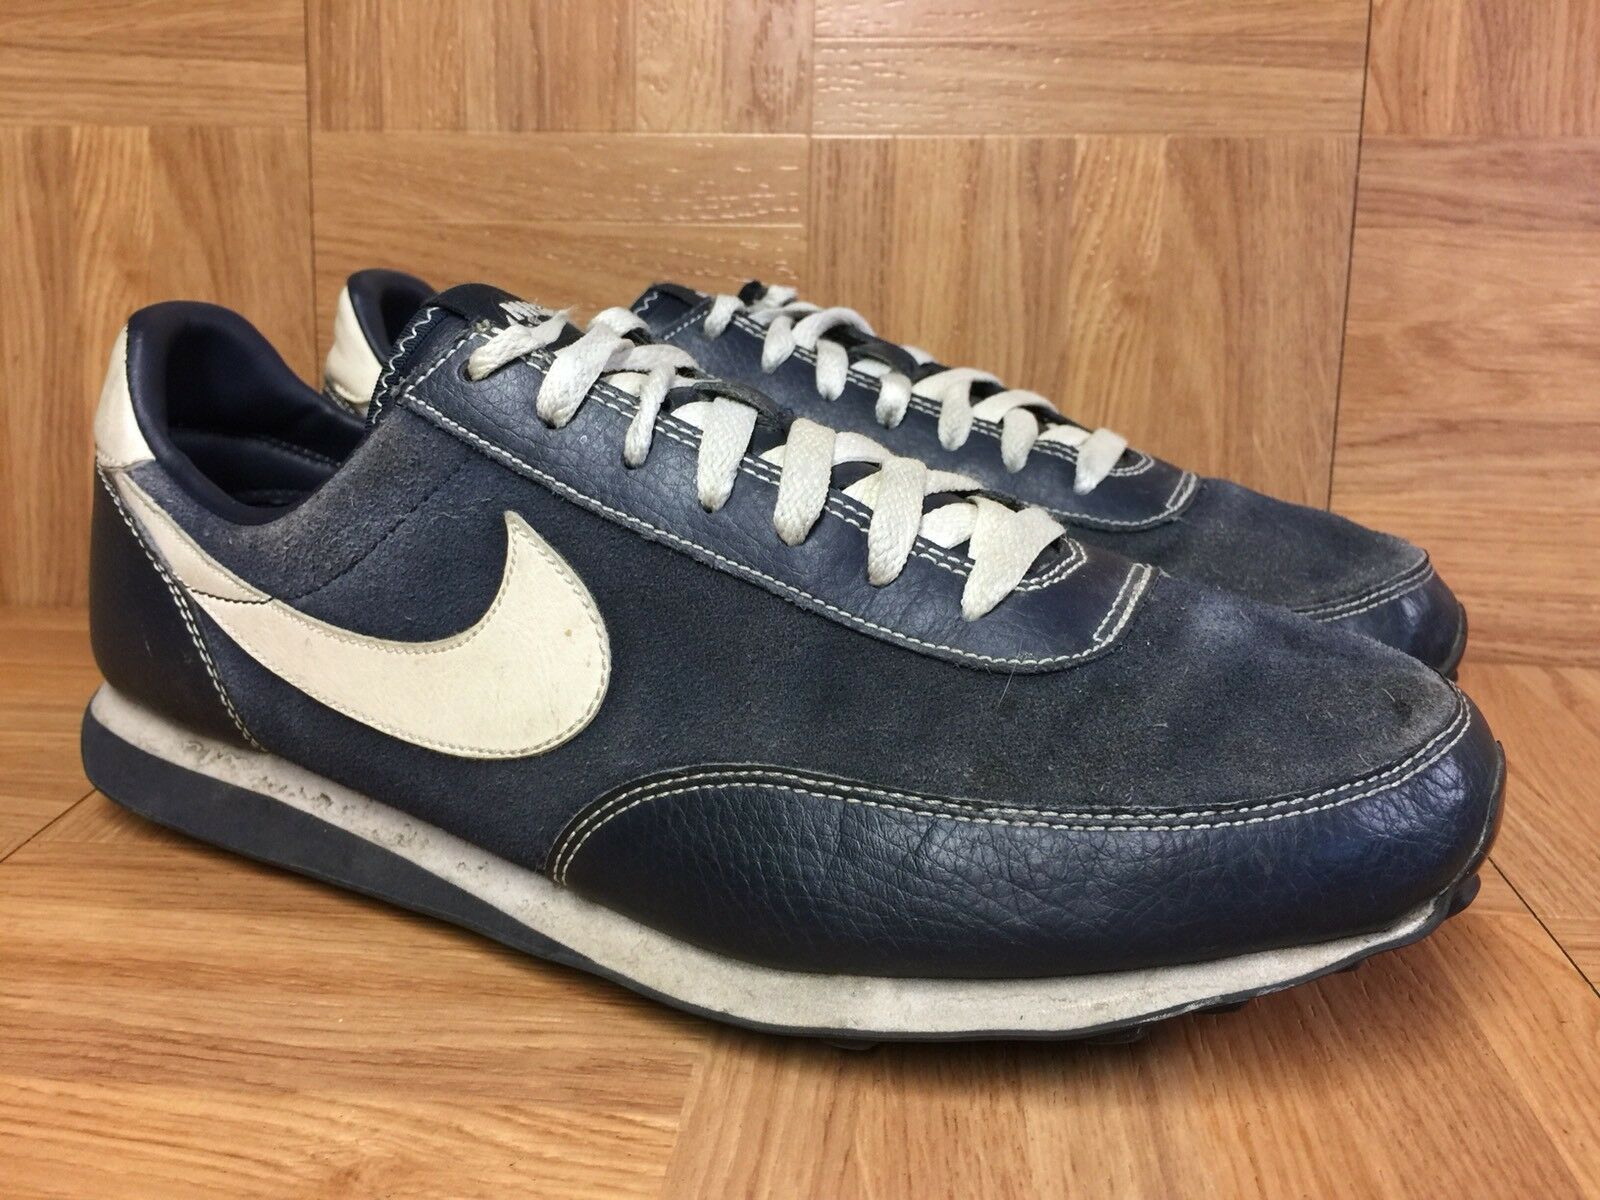 RARE� Nike Elite SI Obsidian Blue Leather Suede Waffle 10 407478-402 Men's Shoe  New shoes for men and women, limited time discount